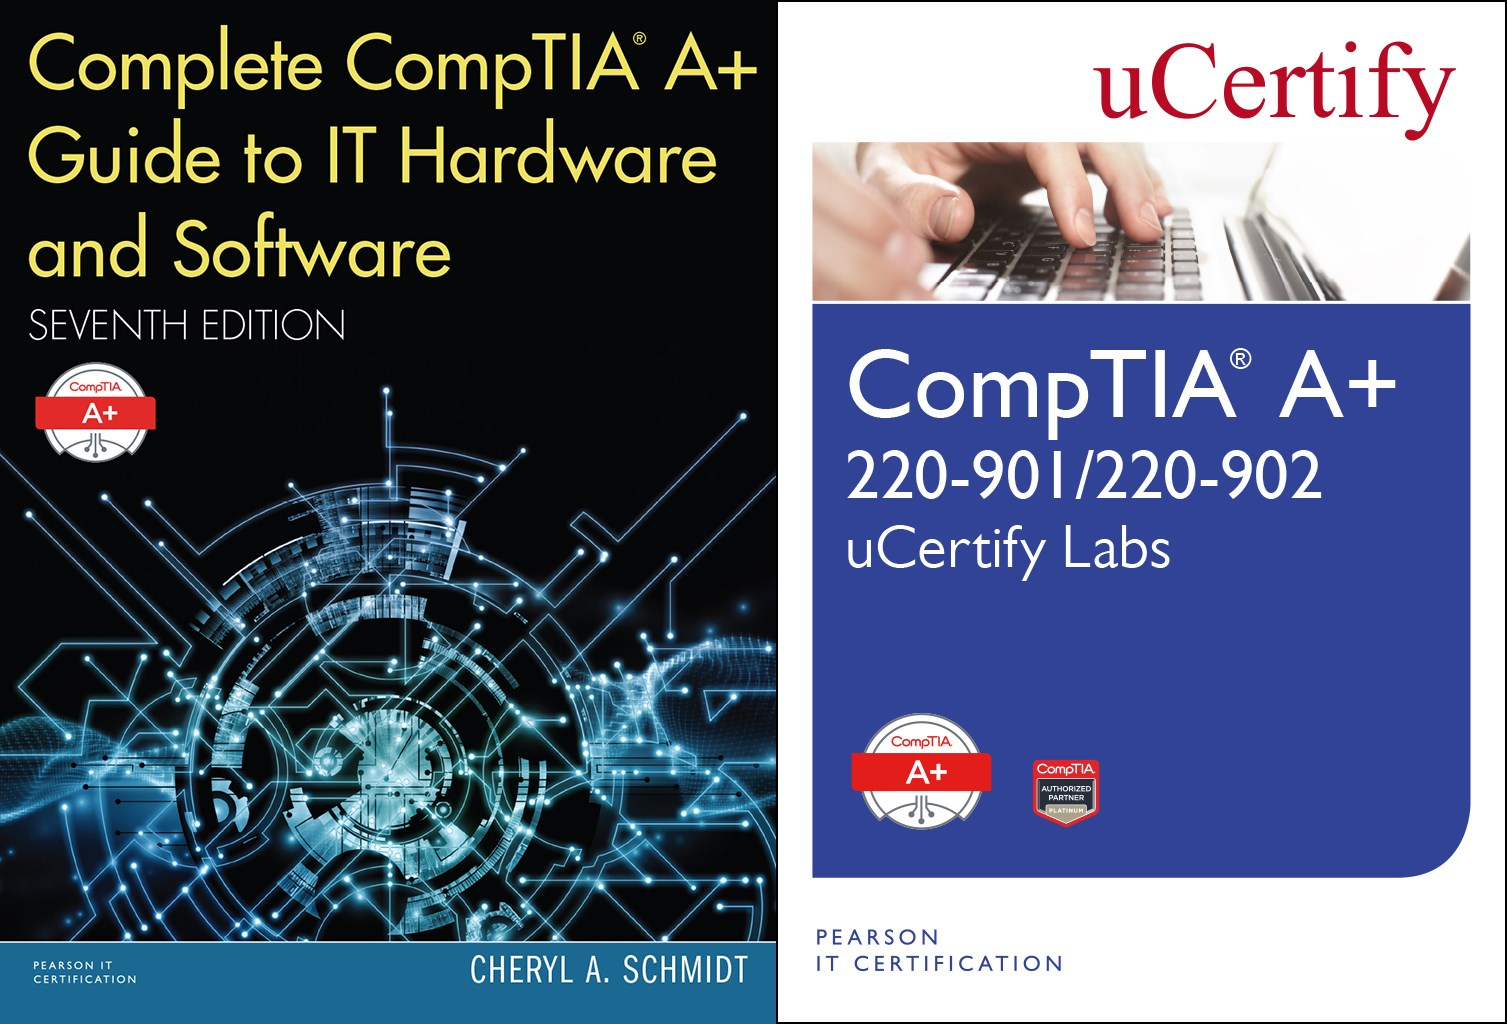 Complete CompTIA Guide to IT Hardware and Software, 7/e and CompTIA A+ 220-901/220-902 uCertify Labs Bundle